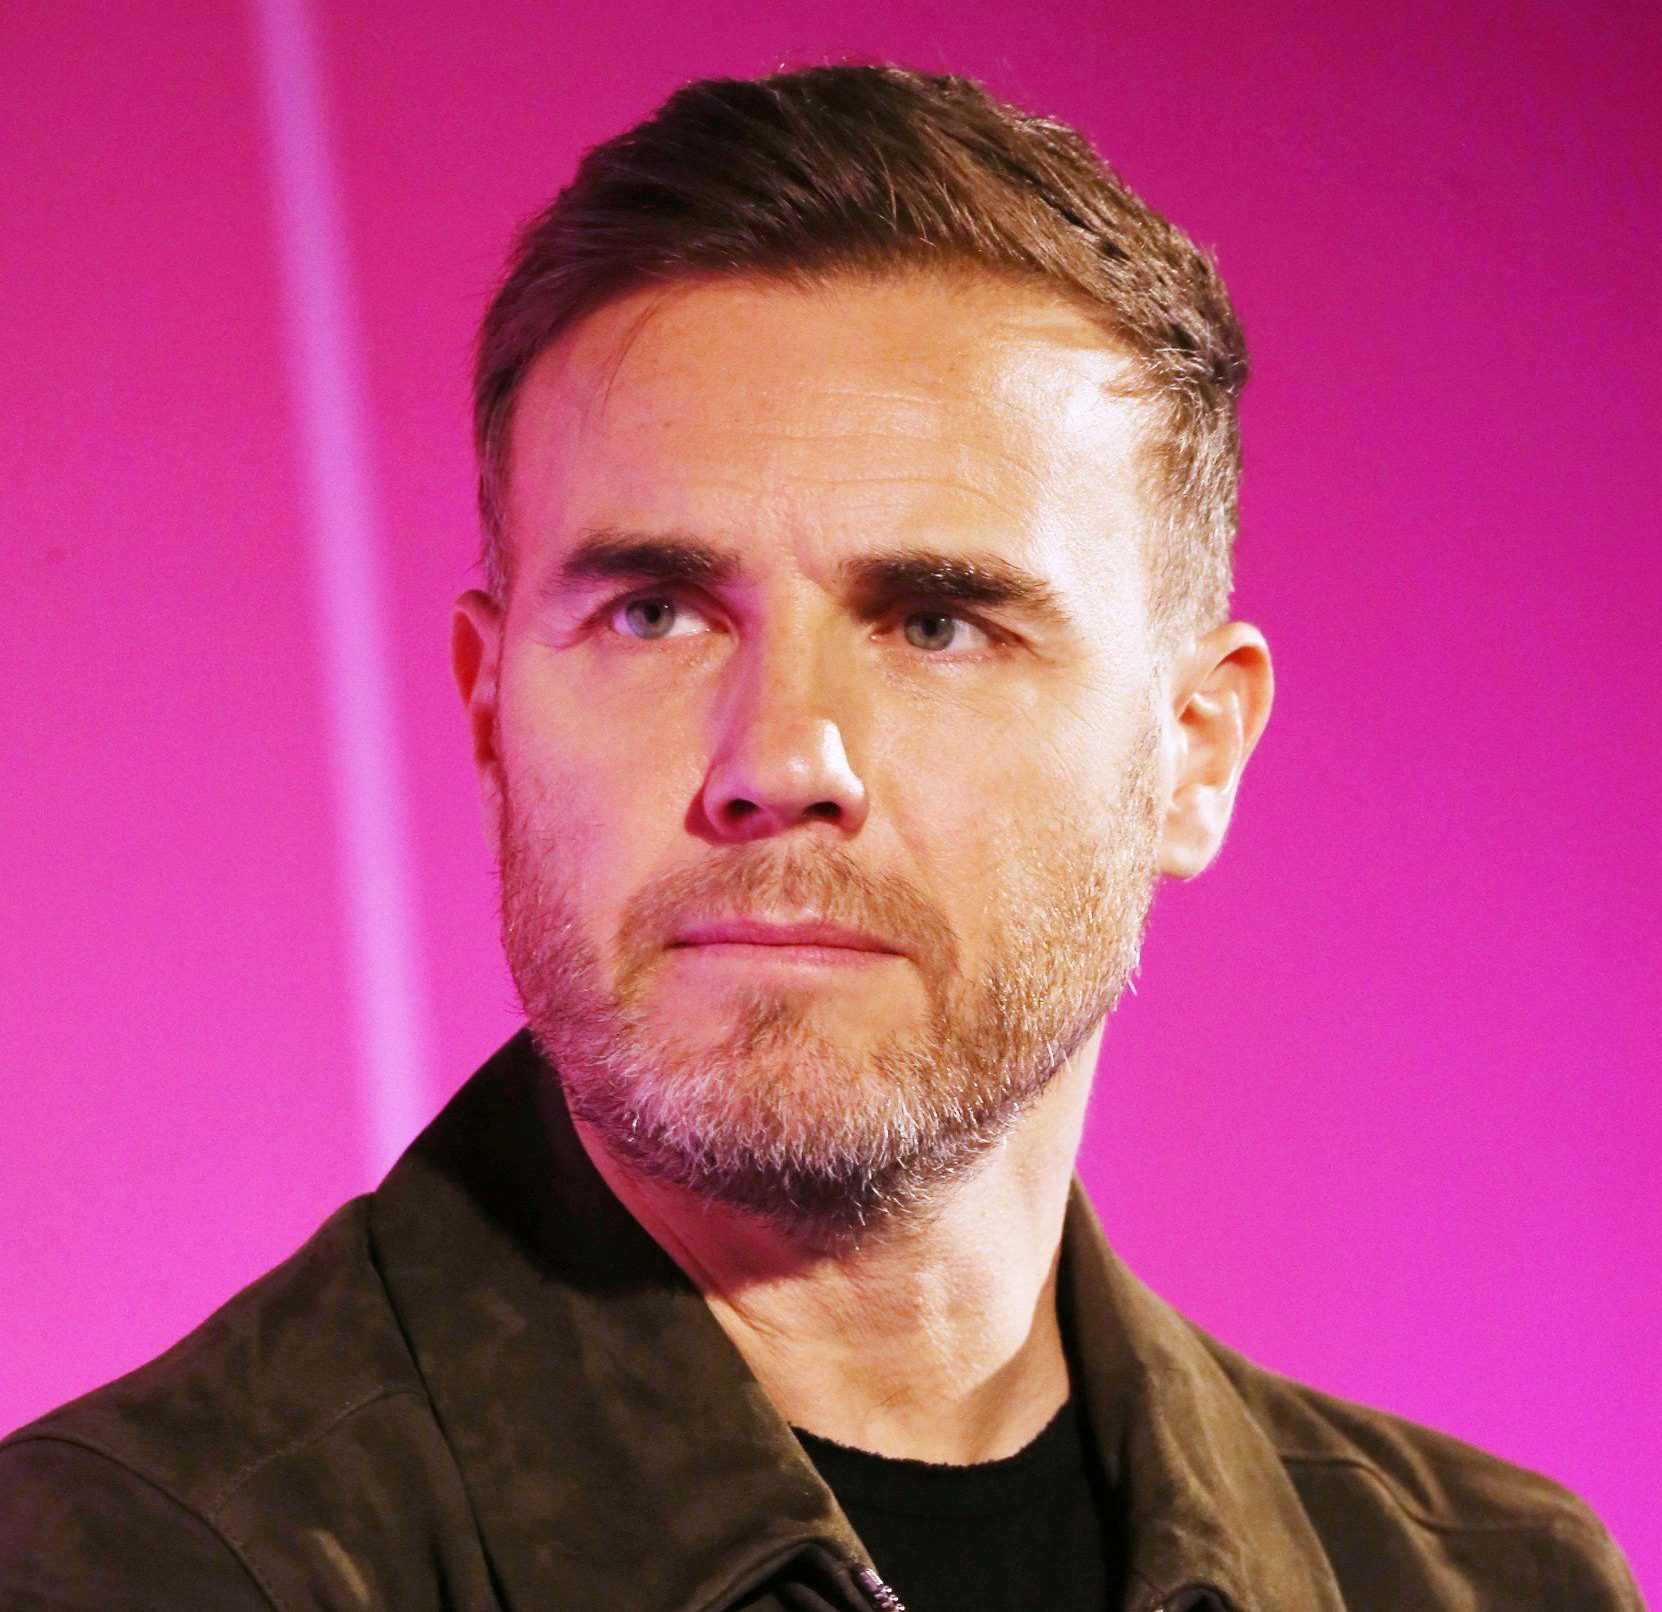 Mandatory Credit: Photo by REX/Shutterstock (8549839o) Gary Barlow (Singer-Songwriter and Record Producer, Take That) Nicola Mendelsohn In Conversation With Gary Barlow seminar, Advertising Week Europe 2017, Fast Company Stage, Picturehouse Central, London, UK - 22 Mar 2017